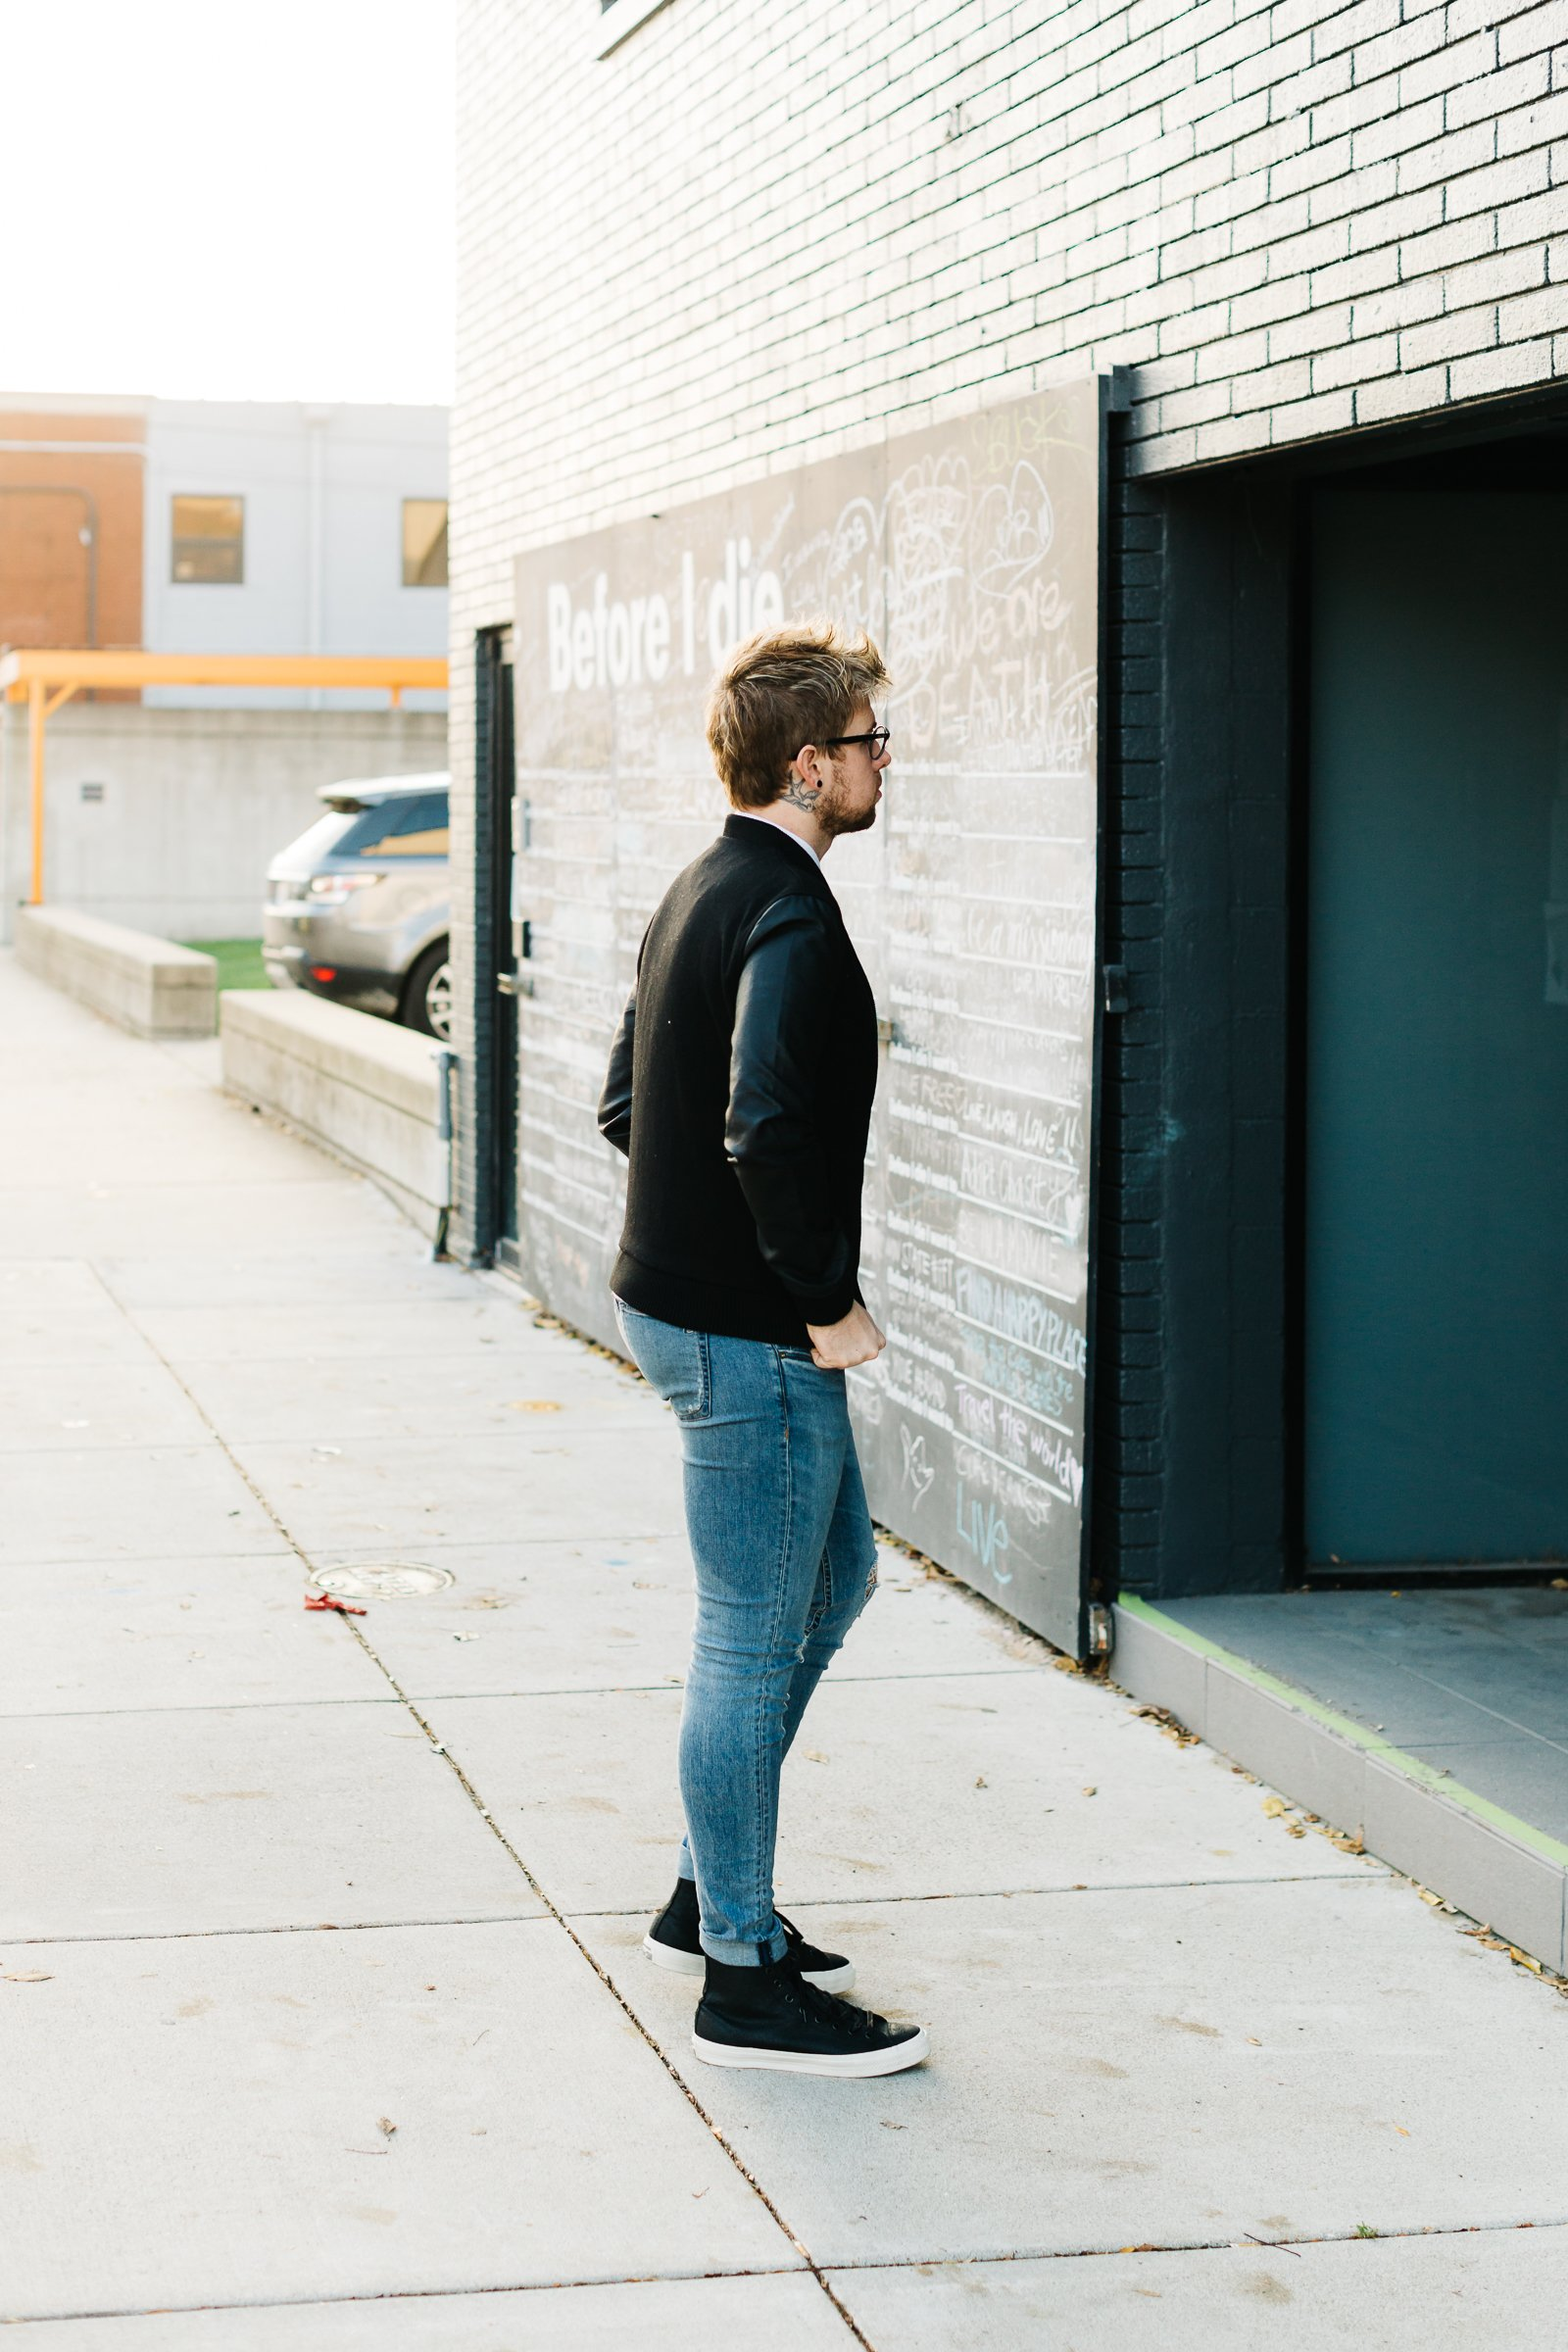 stitch fix, mens subscription clothing service, personal shopping for men, mens fall fashion, style blog